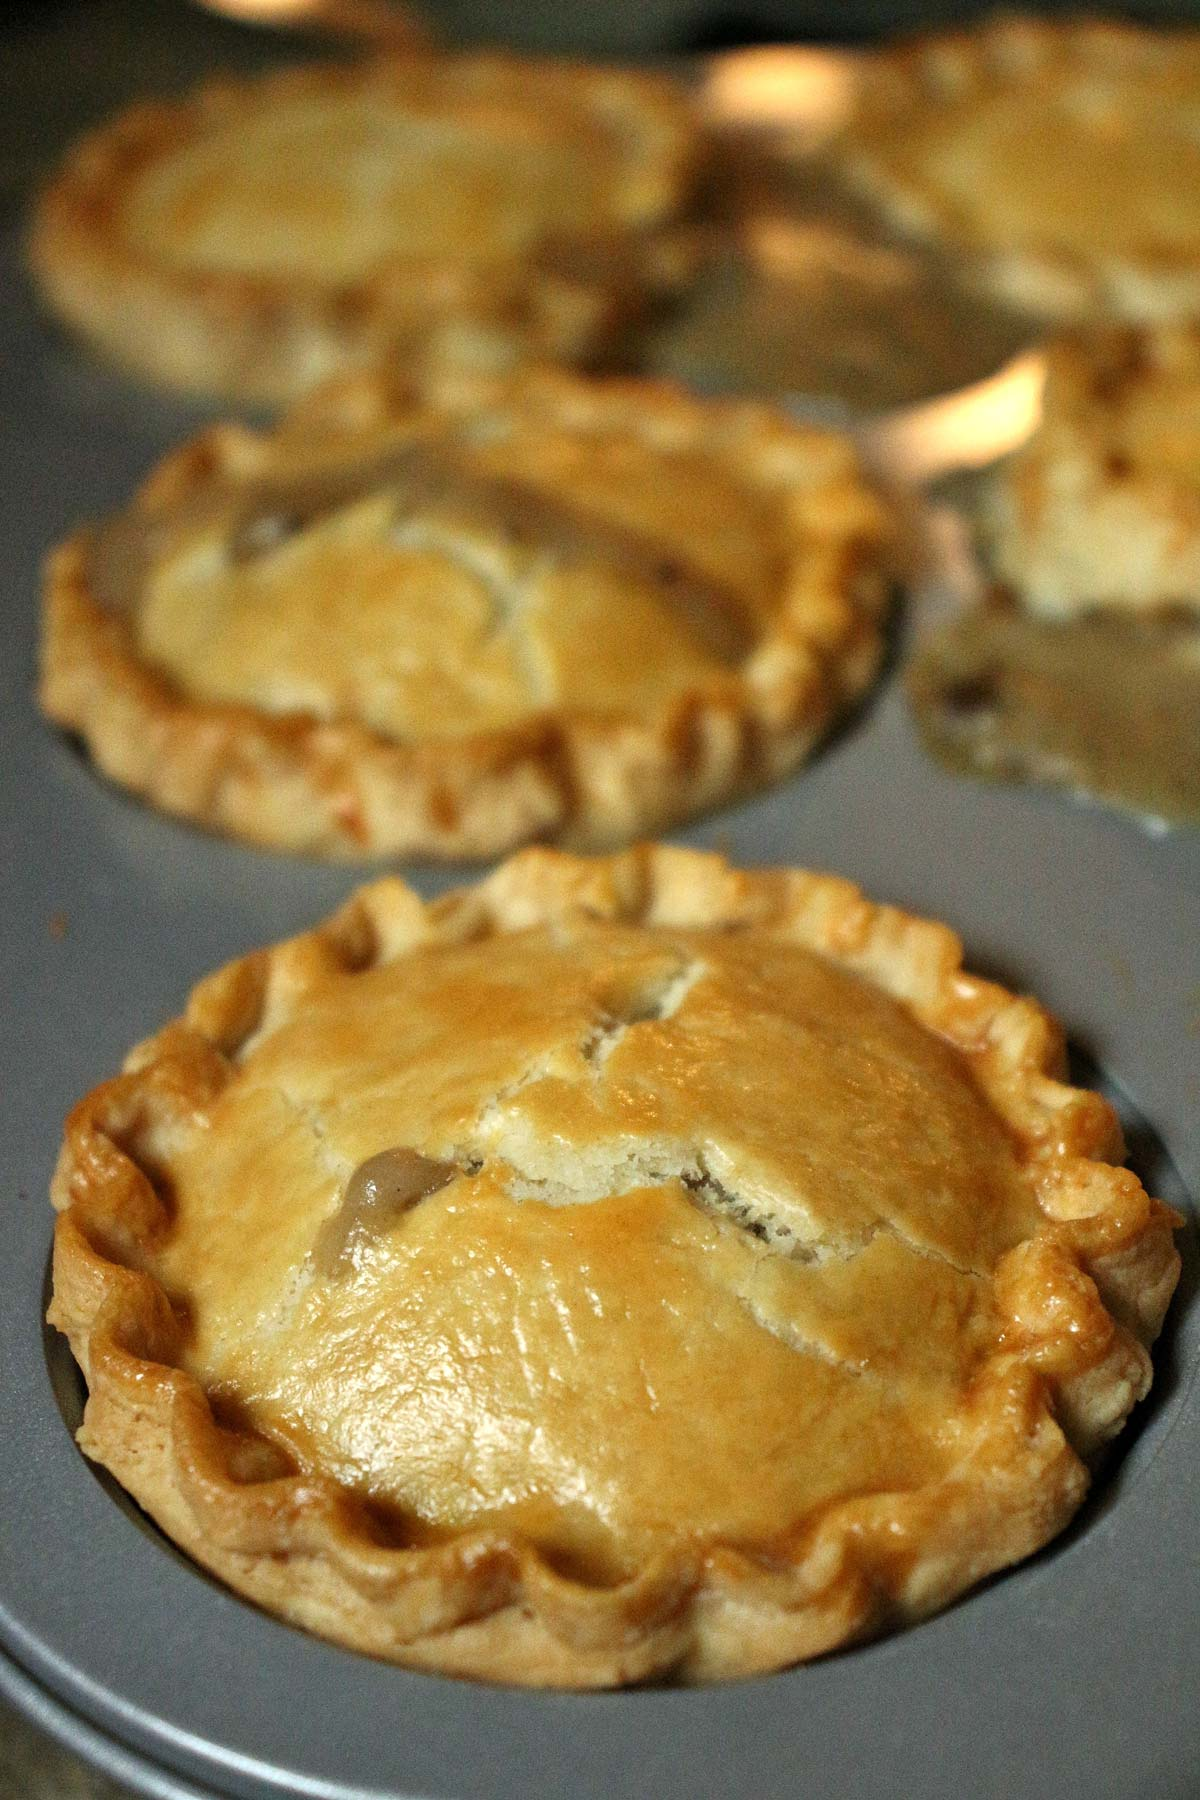 Individual chicken and mushroom pies baked in a jumbo muffin pan until golden and bubbly.